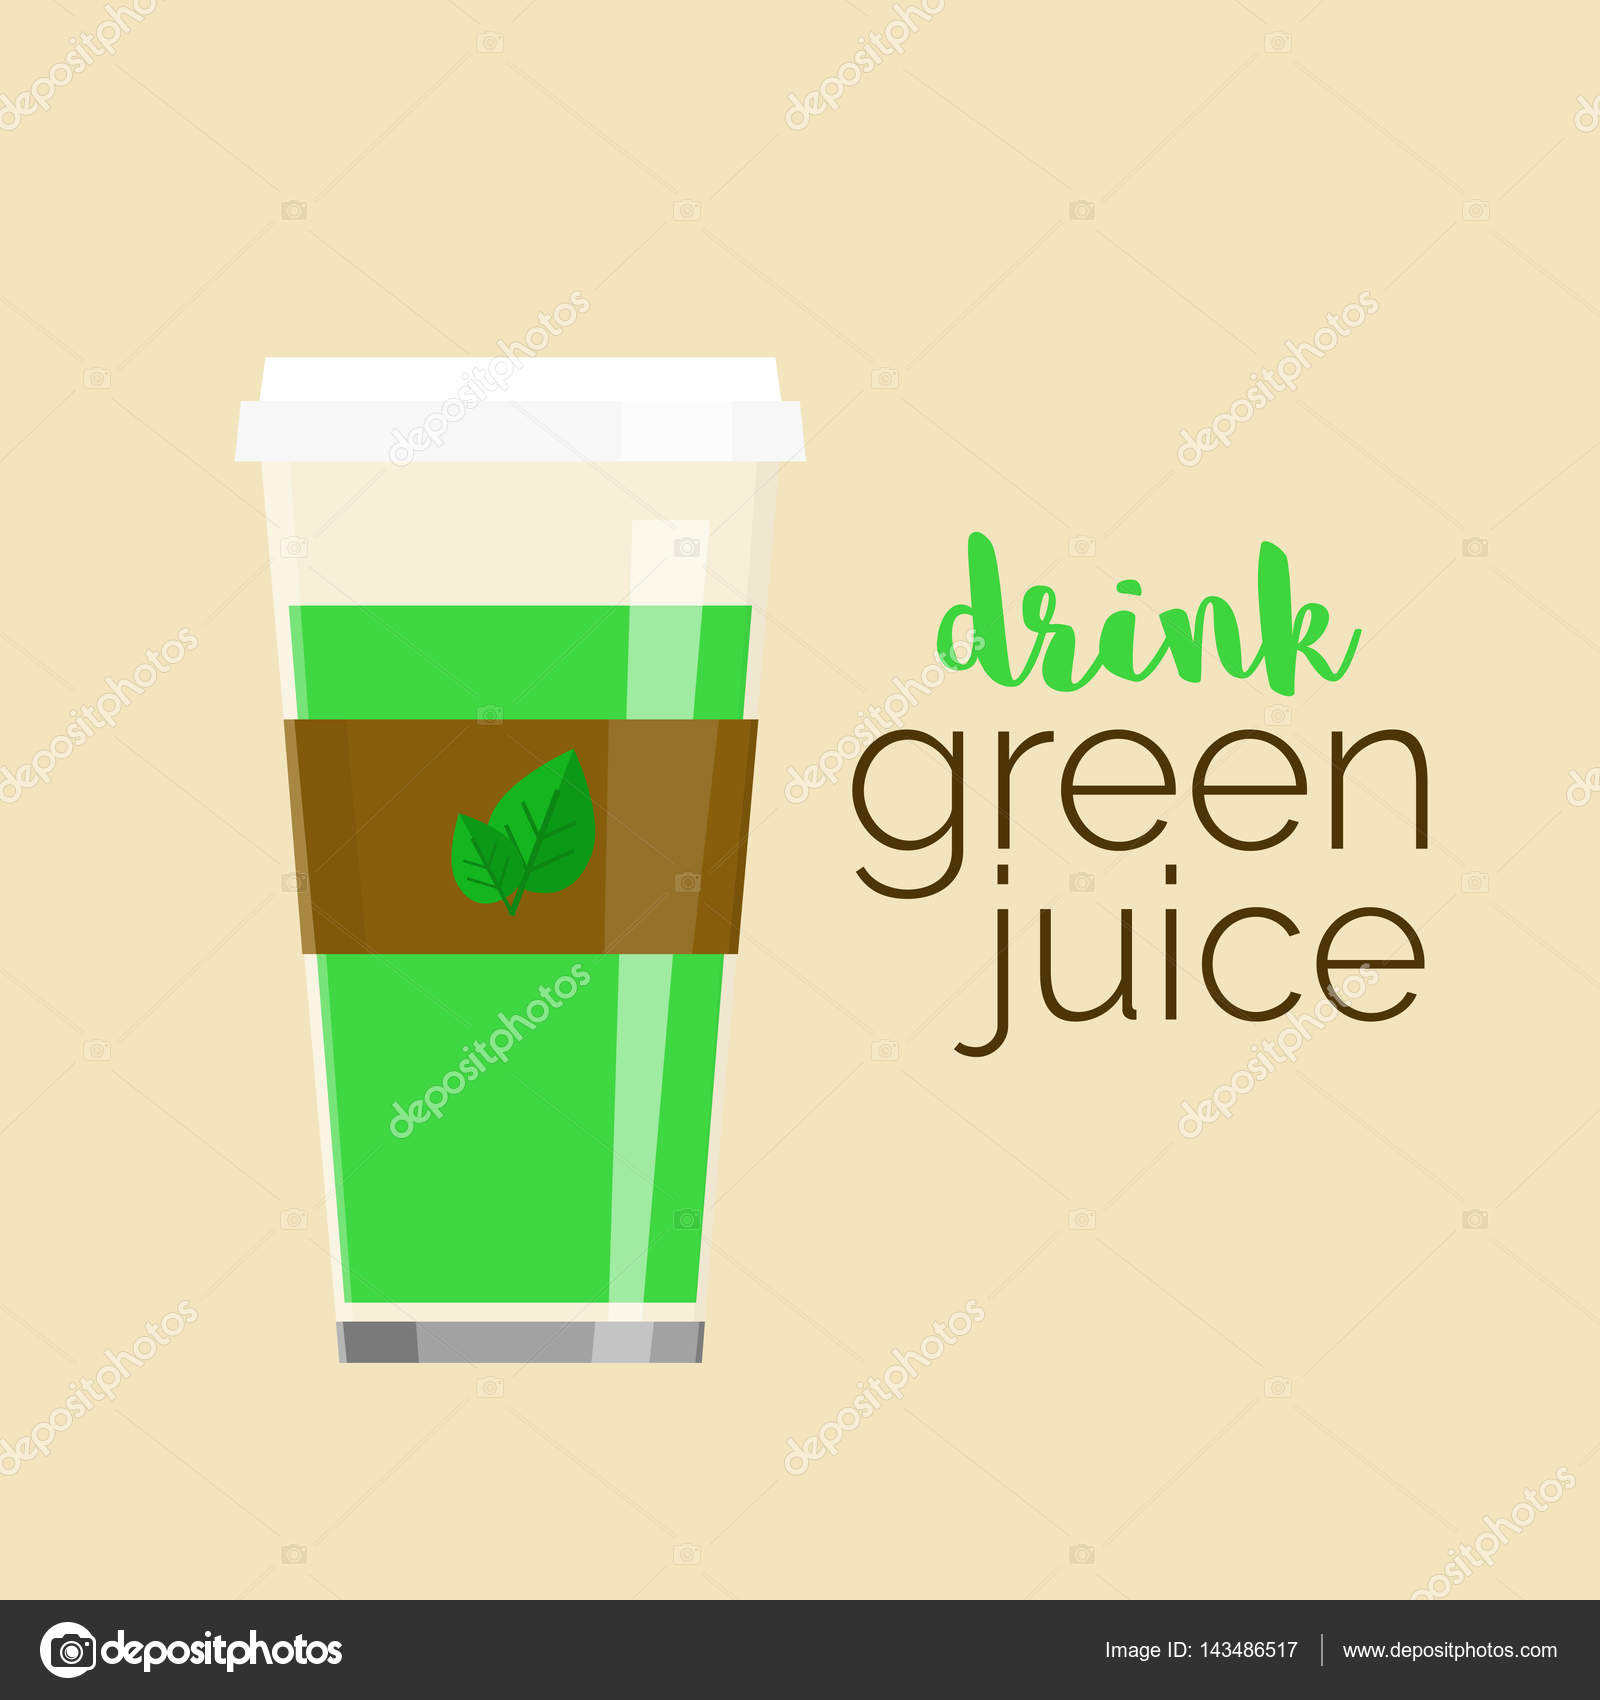 Glass juice cups design - Cup Of Green Juice Glass With Healthy Green Juice With Sample Text Reusable Travel Cup To Go Vector Illustration For Your Design Stock Illustration